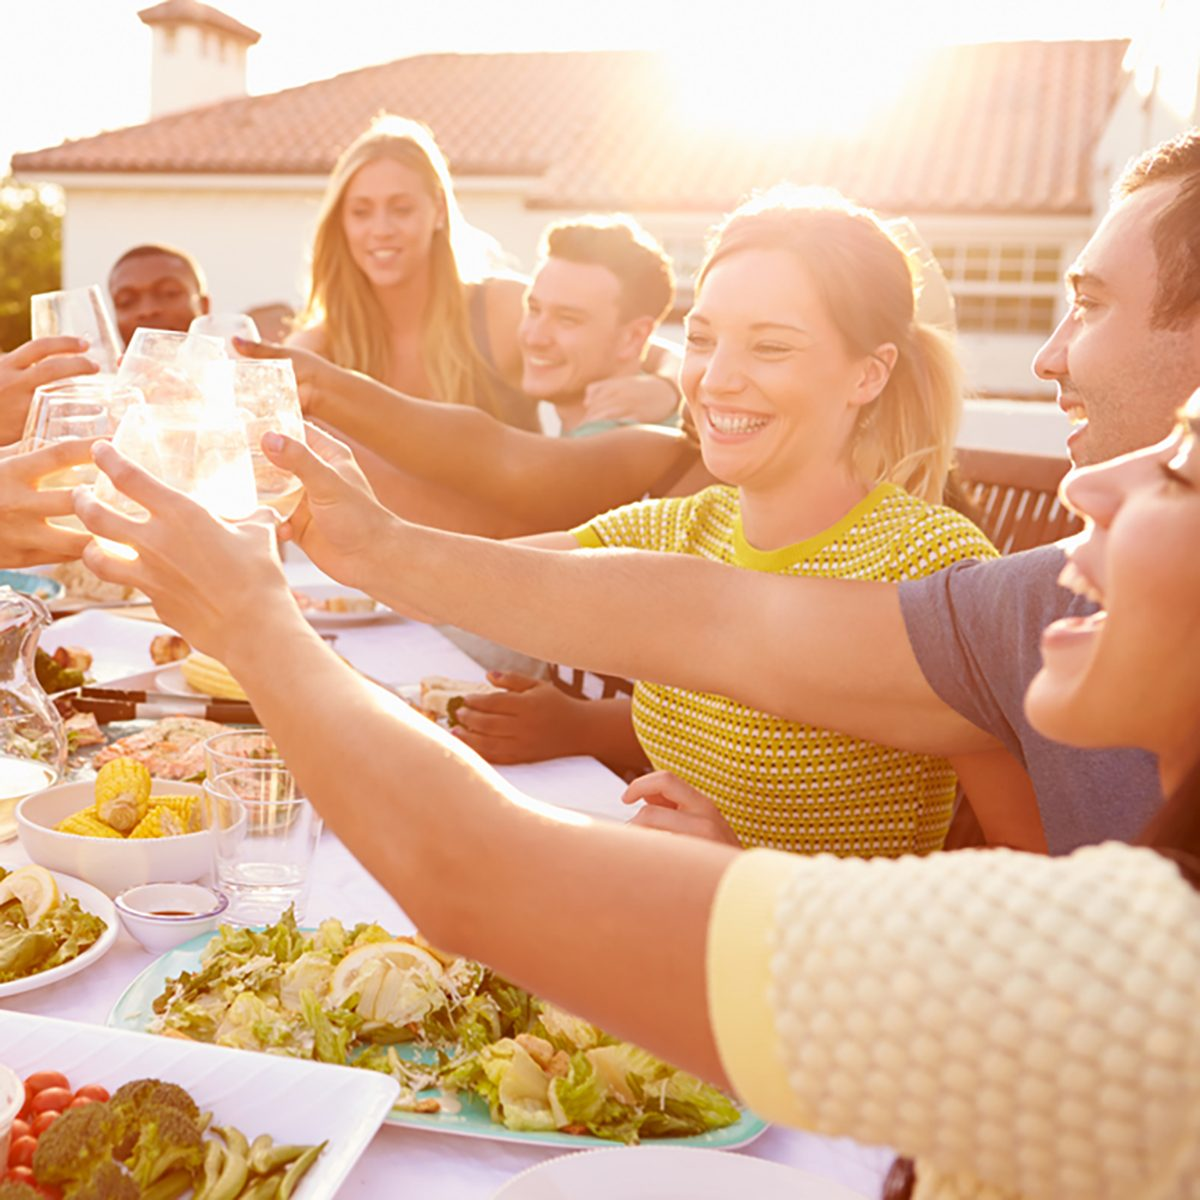 Group Of Young People Enjoying Outdoor Summer Meal